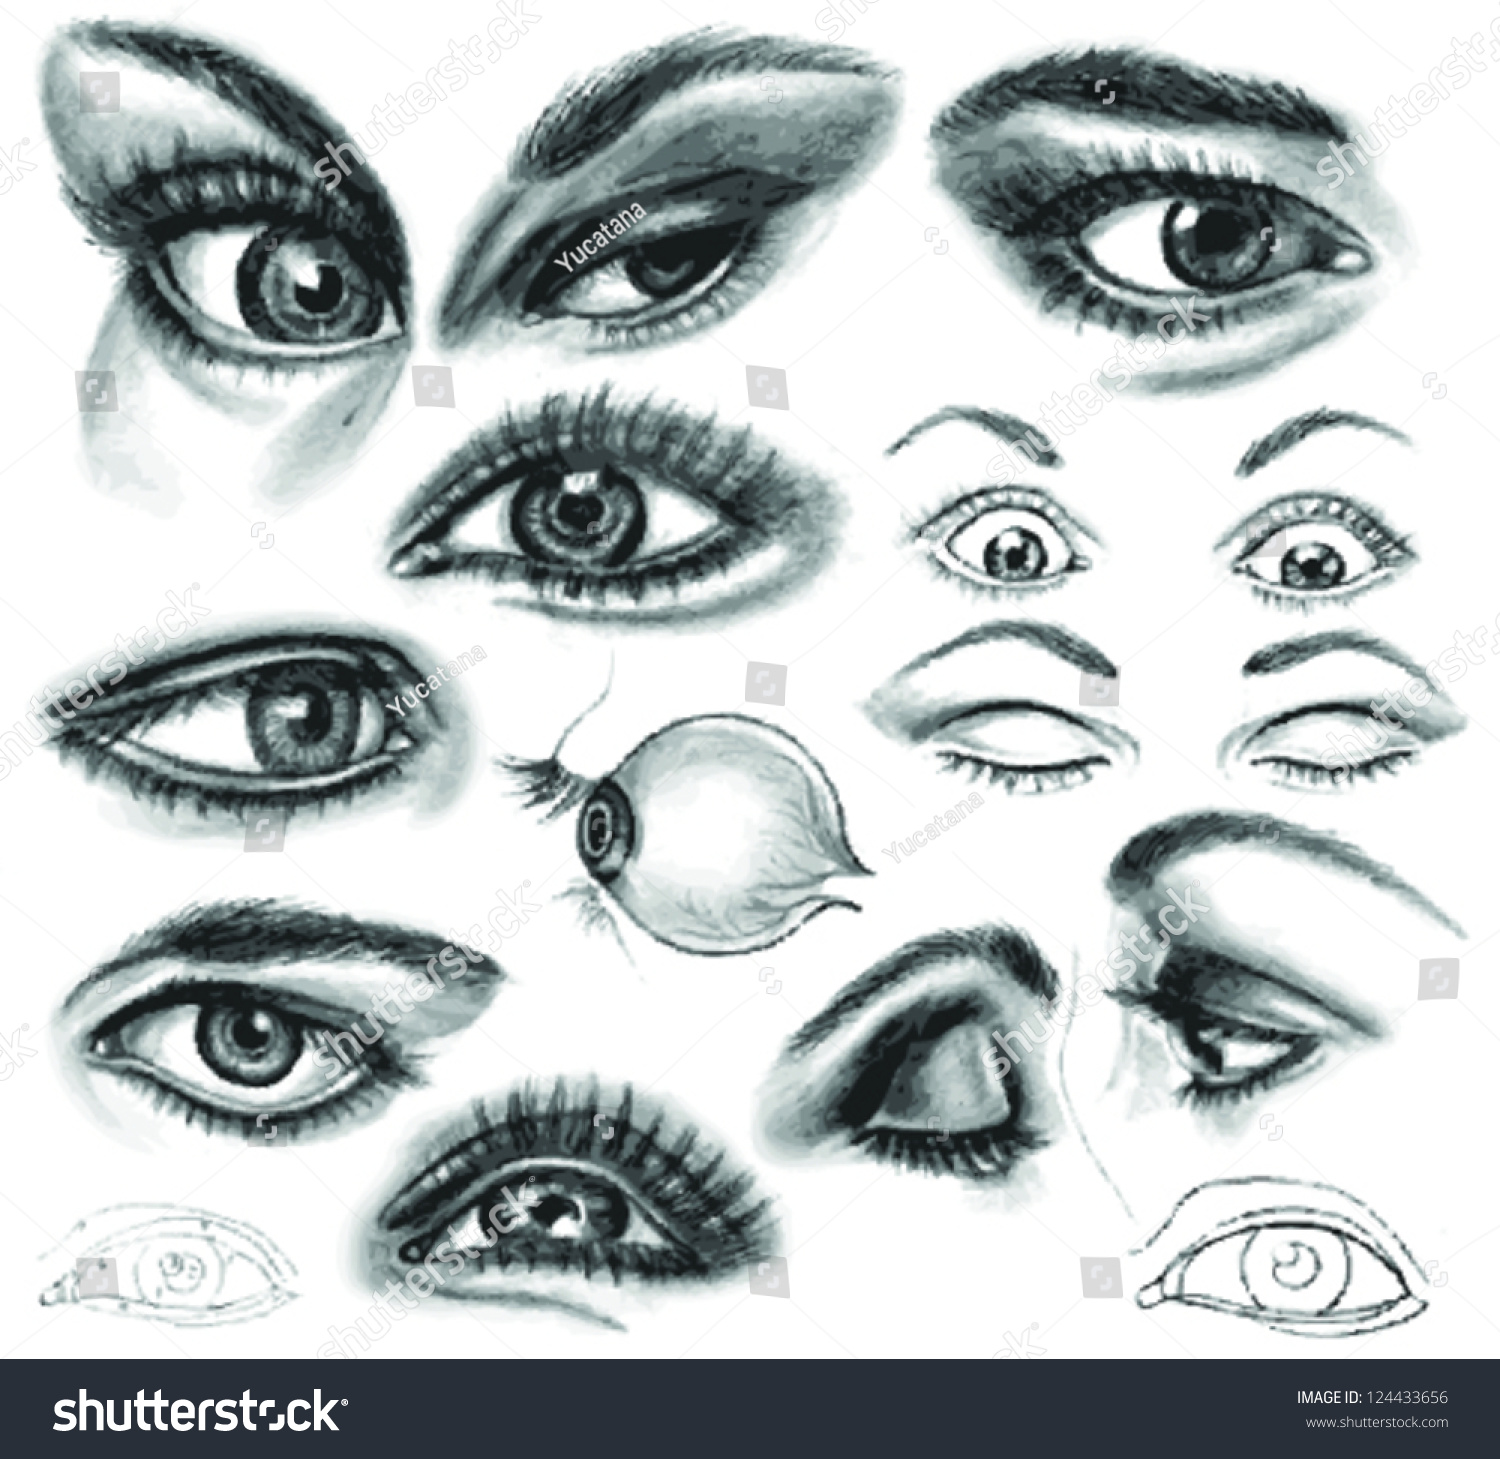 Set pencil drawing eyes and auto traced realistic sketch